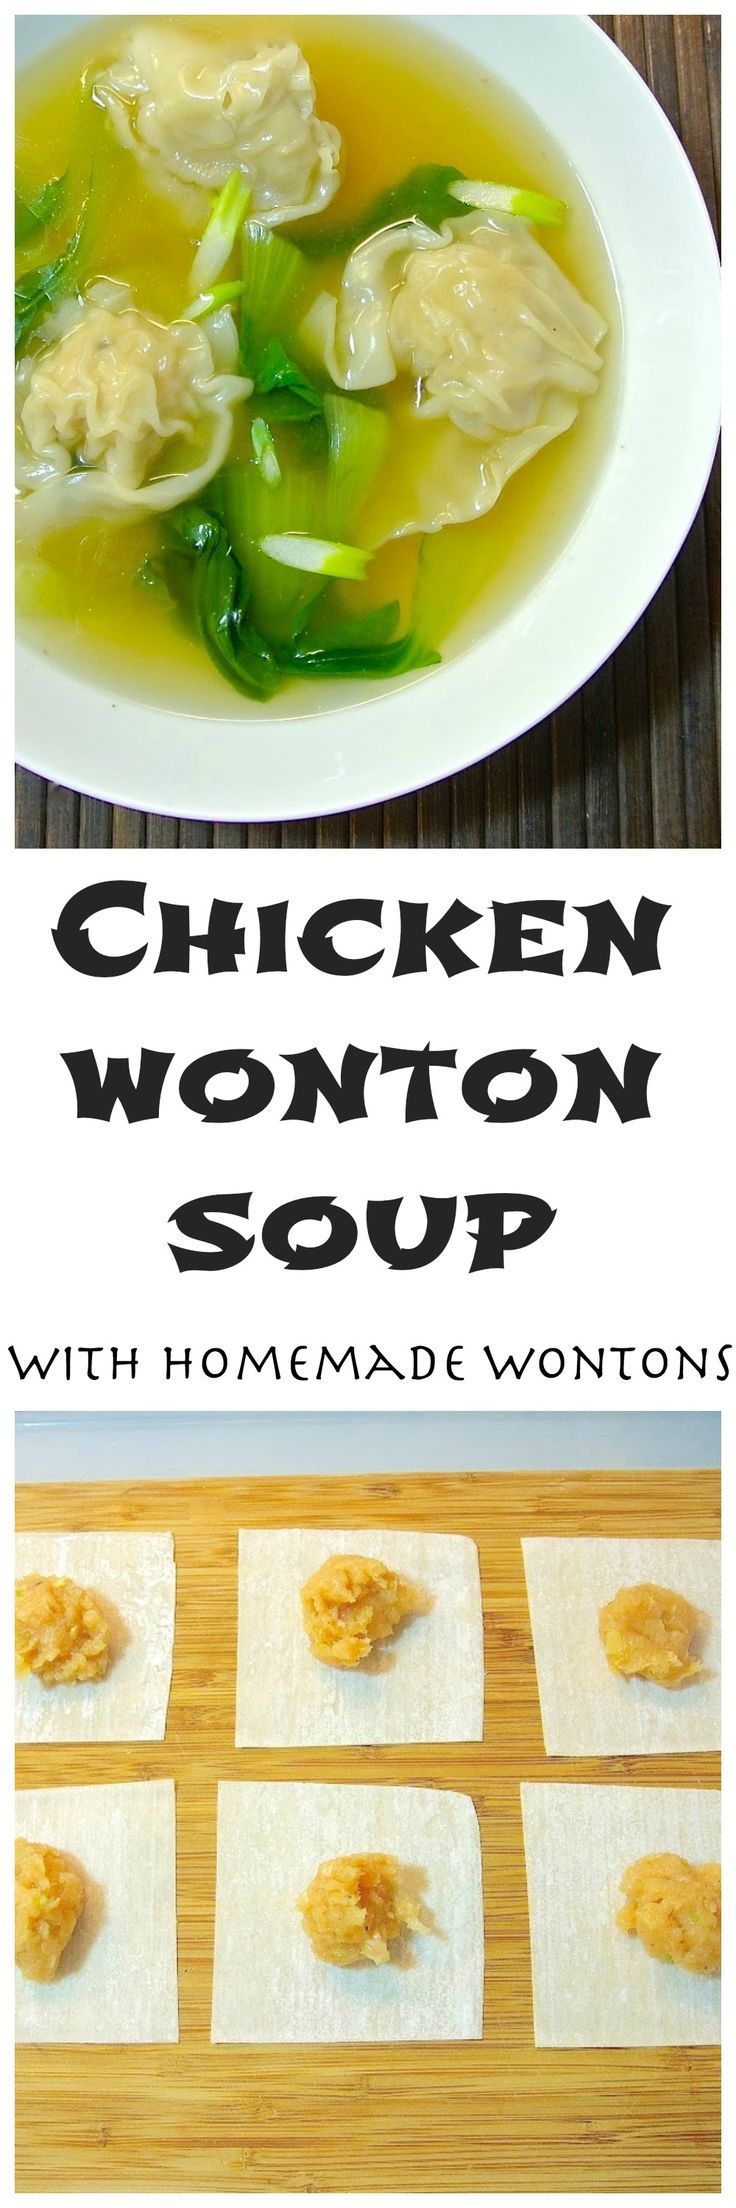 This is a quick, delicious, complete meal that can be ready in minutes (once all your dumplings are made) and is healthy too. Napa cabbage is traditional in wonton soup, but I like to use bok choy because it gets greener when it cooks which makes this soup very eye-catching and bright. (scheduled via http://www.tailwindapp.com?utm_source=pinterest&utm_medium=twpin&utm_content=post17503624&utm_campaign=scheduler_attribution)